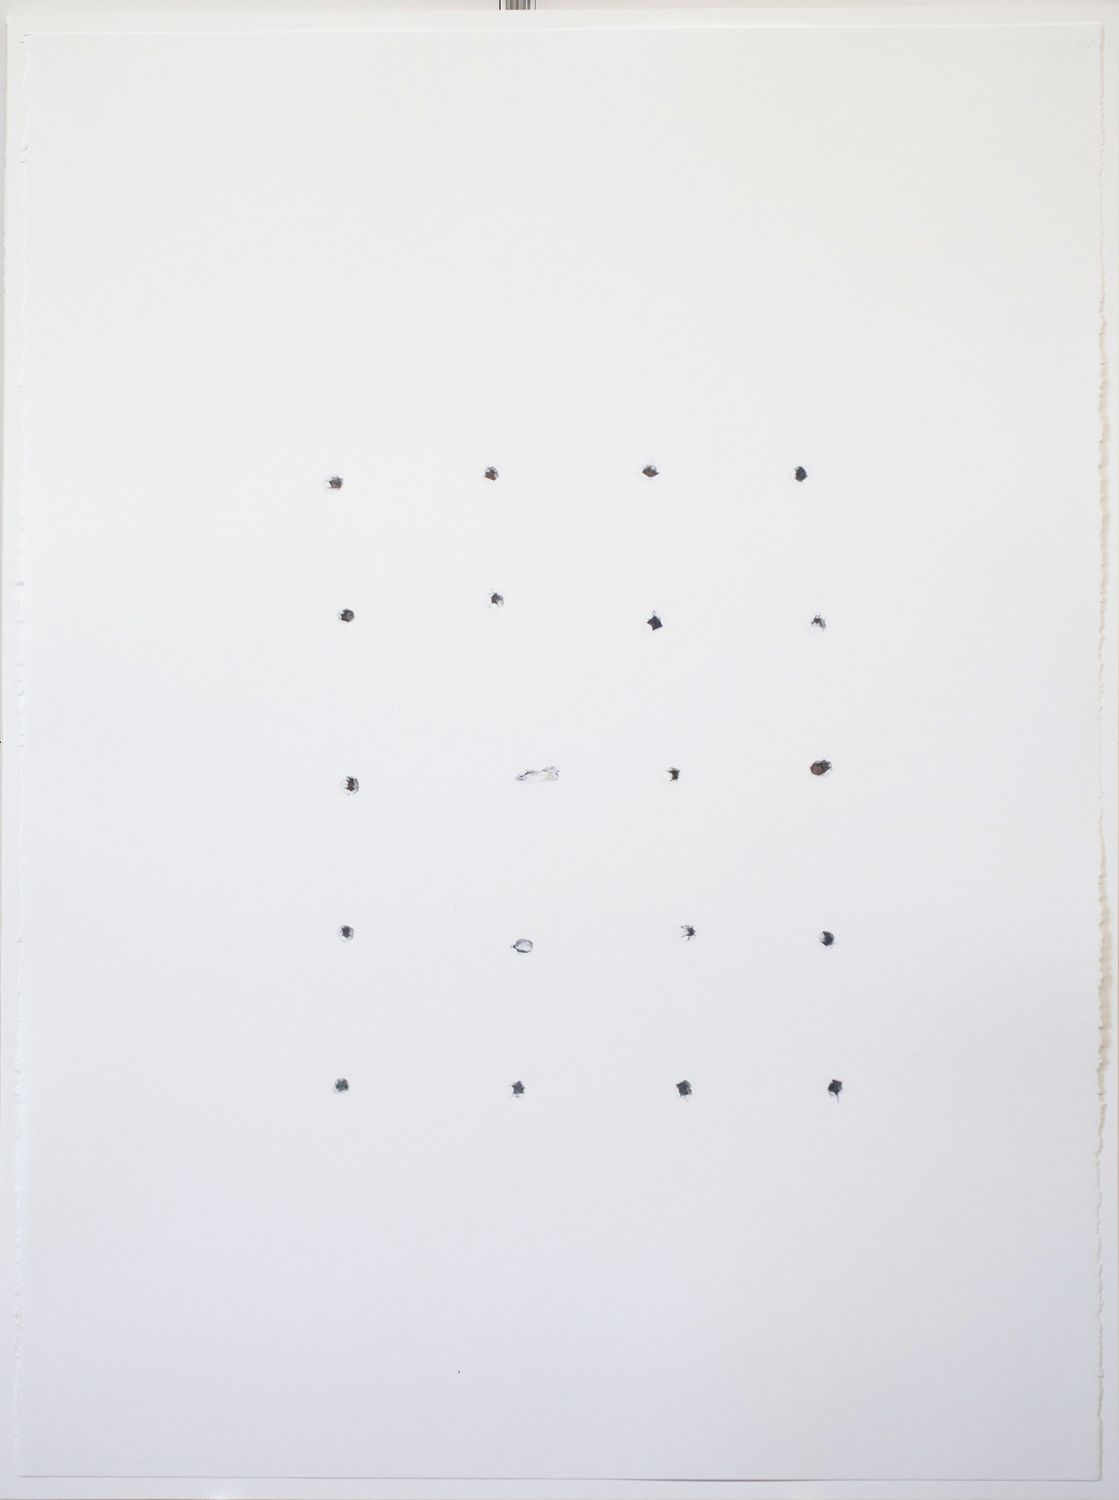 Claire Greenshaw,Pencil Pusher, 2015,coloured pencil on paper, 30 x 24 in.